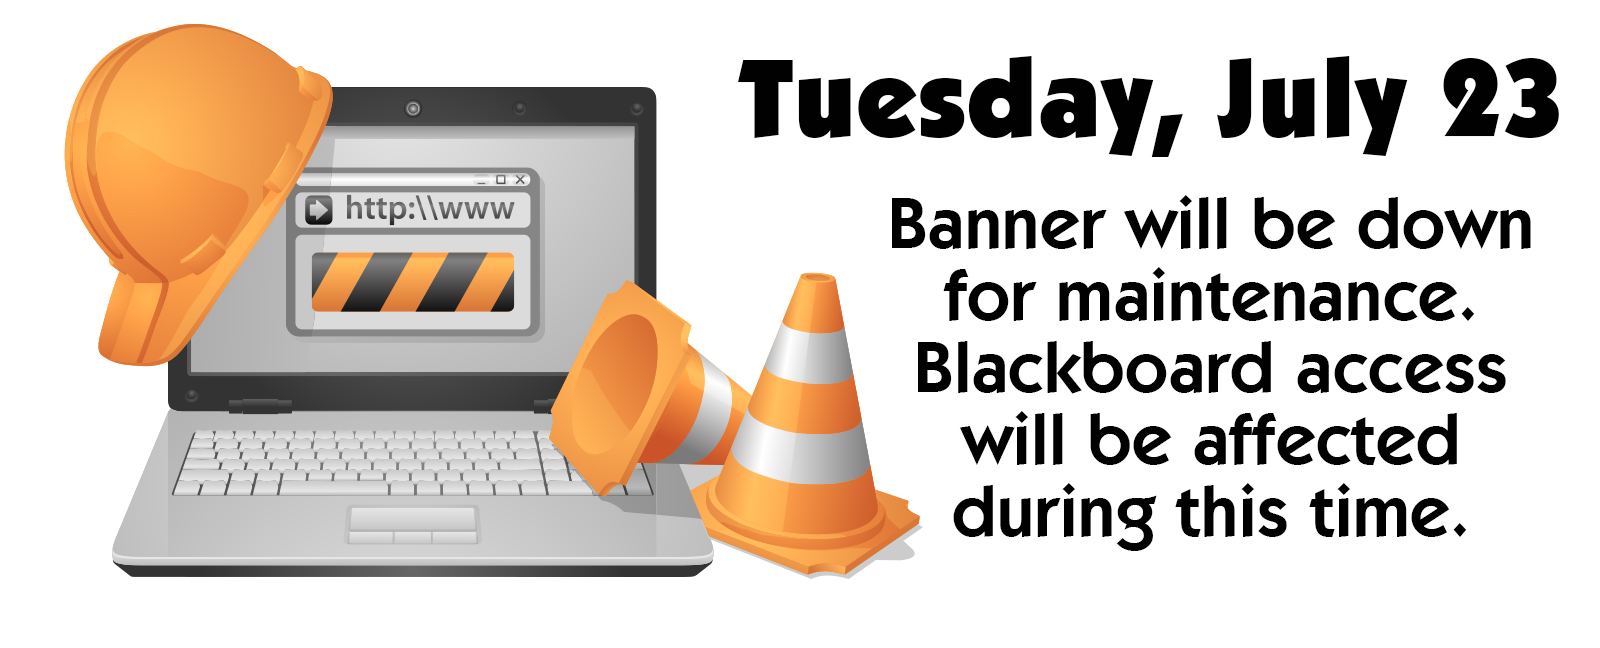 Tuesday, July 23, Banner will be down for maintenance. Blackboard access will be affected during this time.